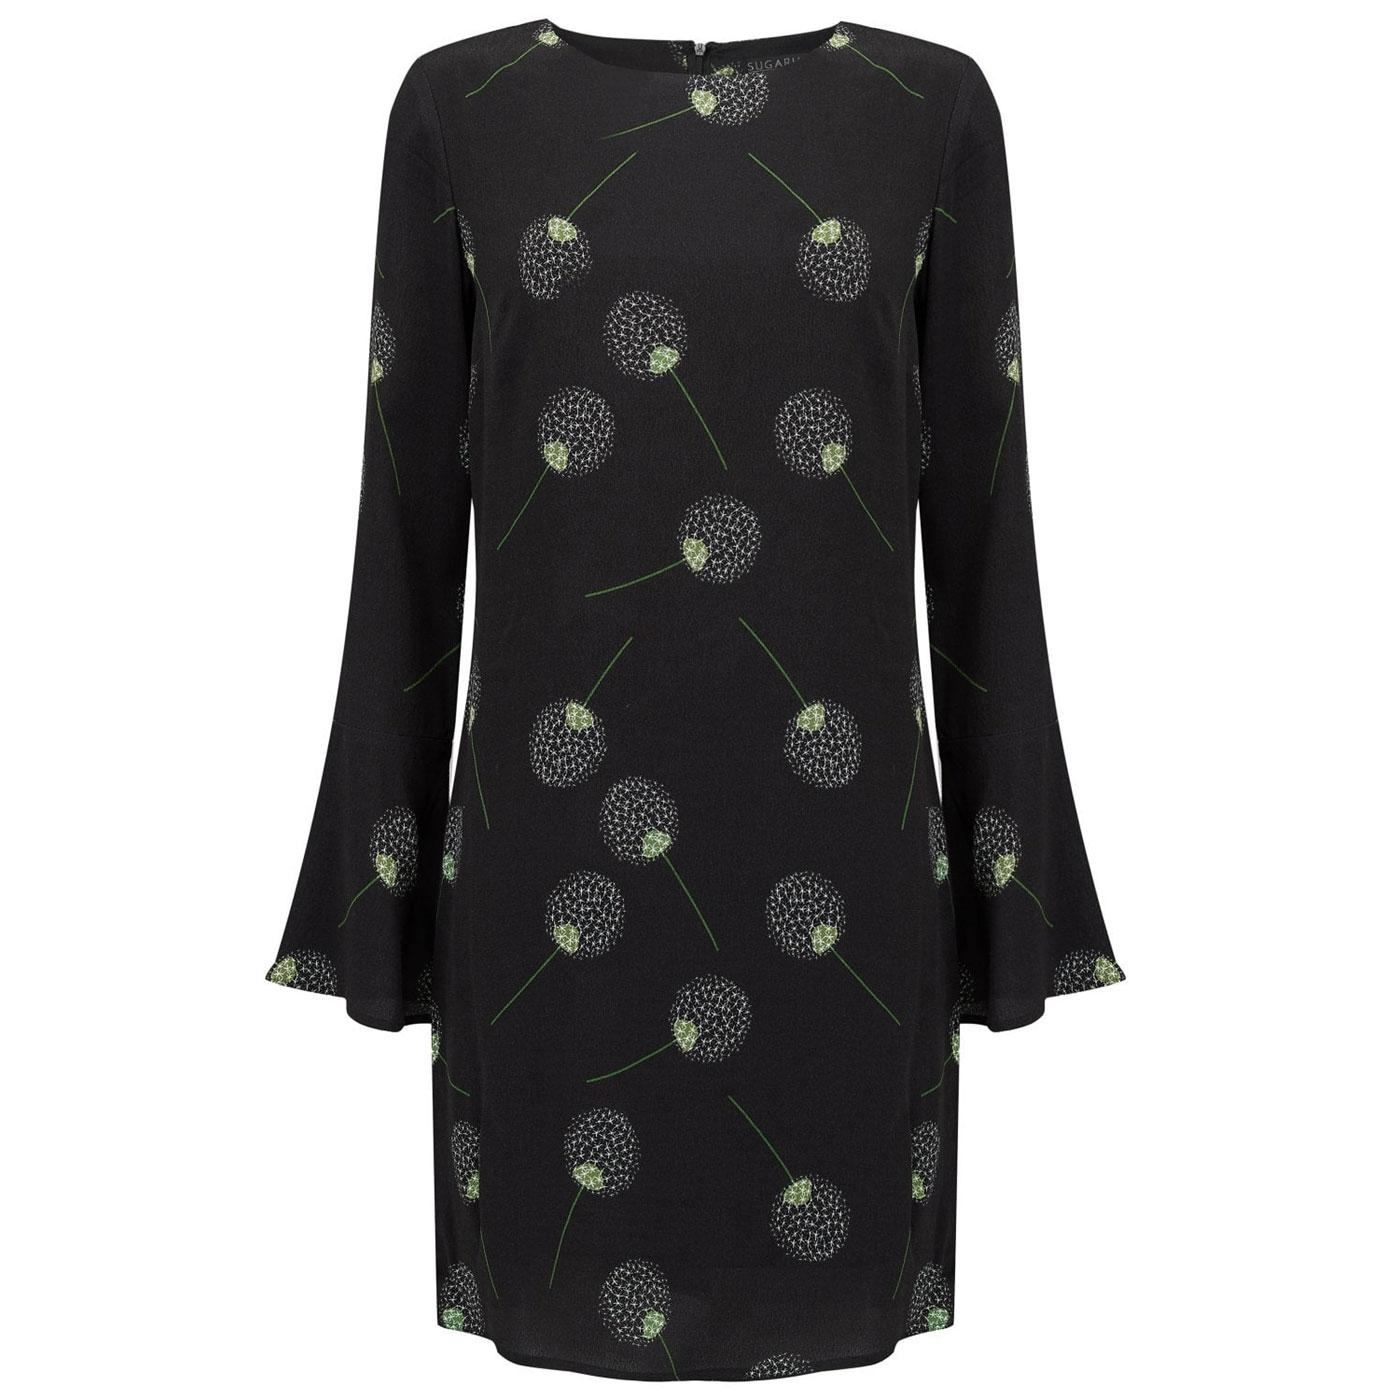 Misty Dandelion SUGARHILL BOUTIQUE 60s Dress Black